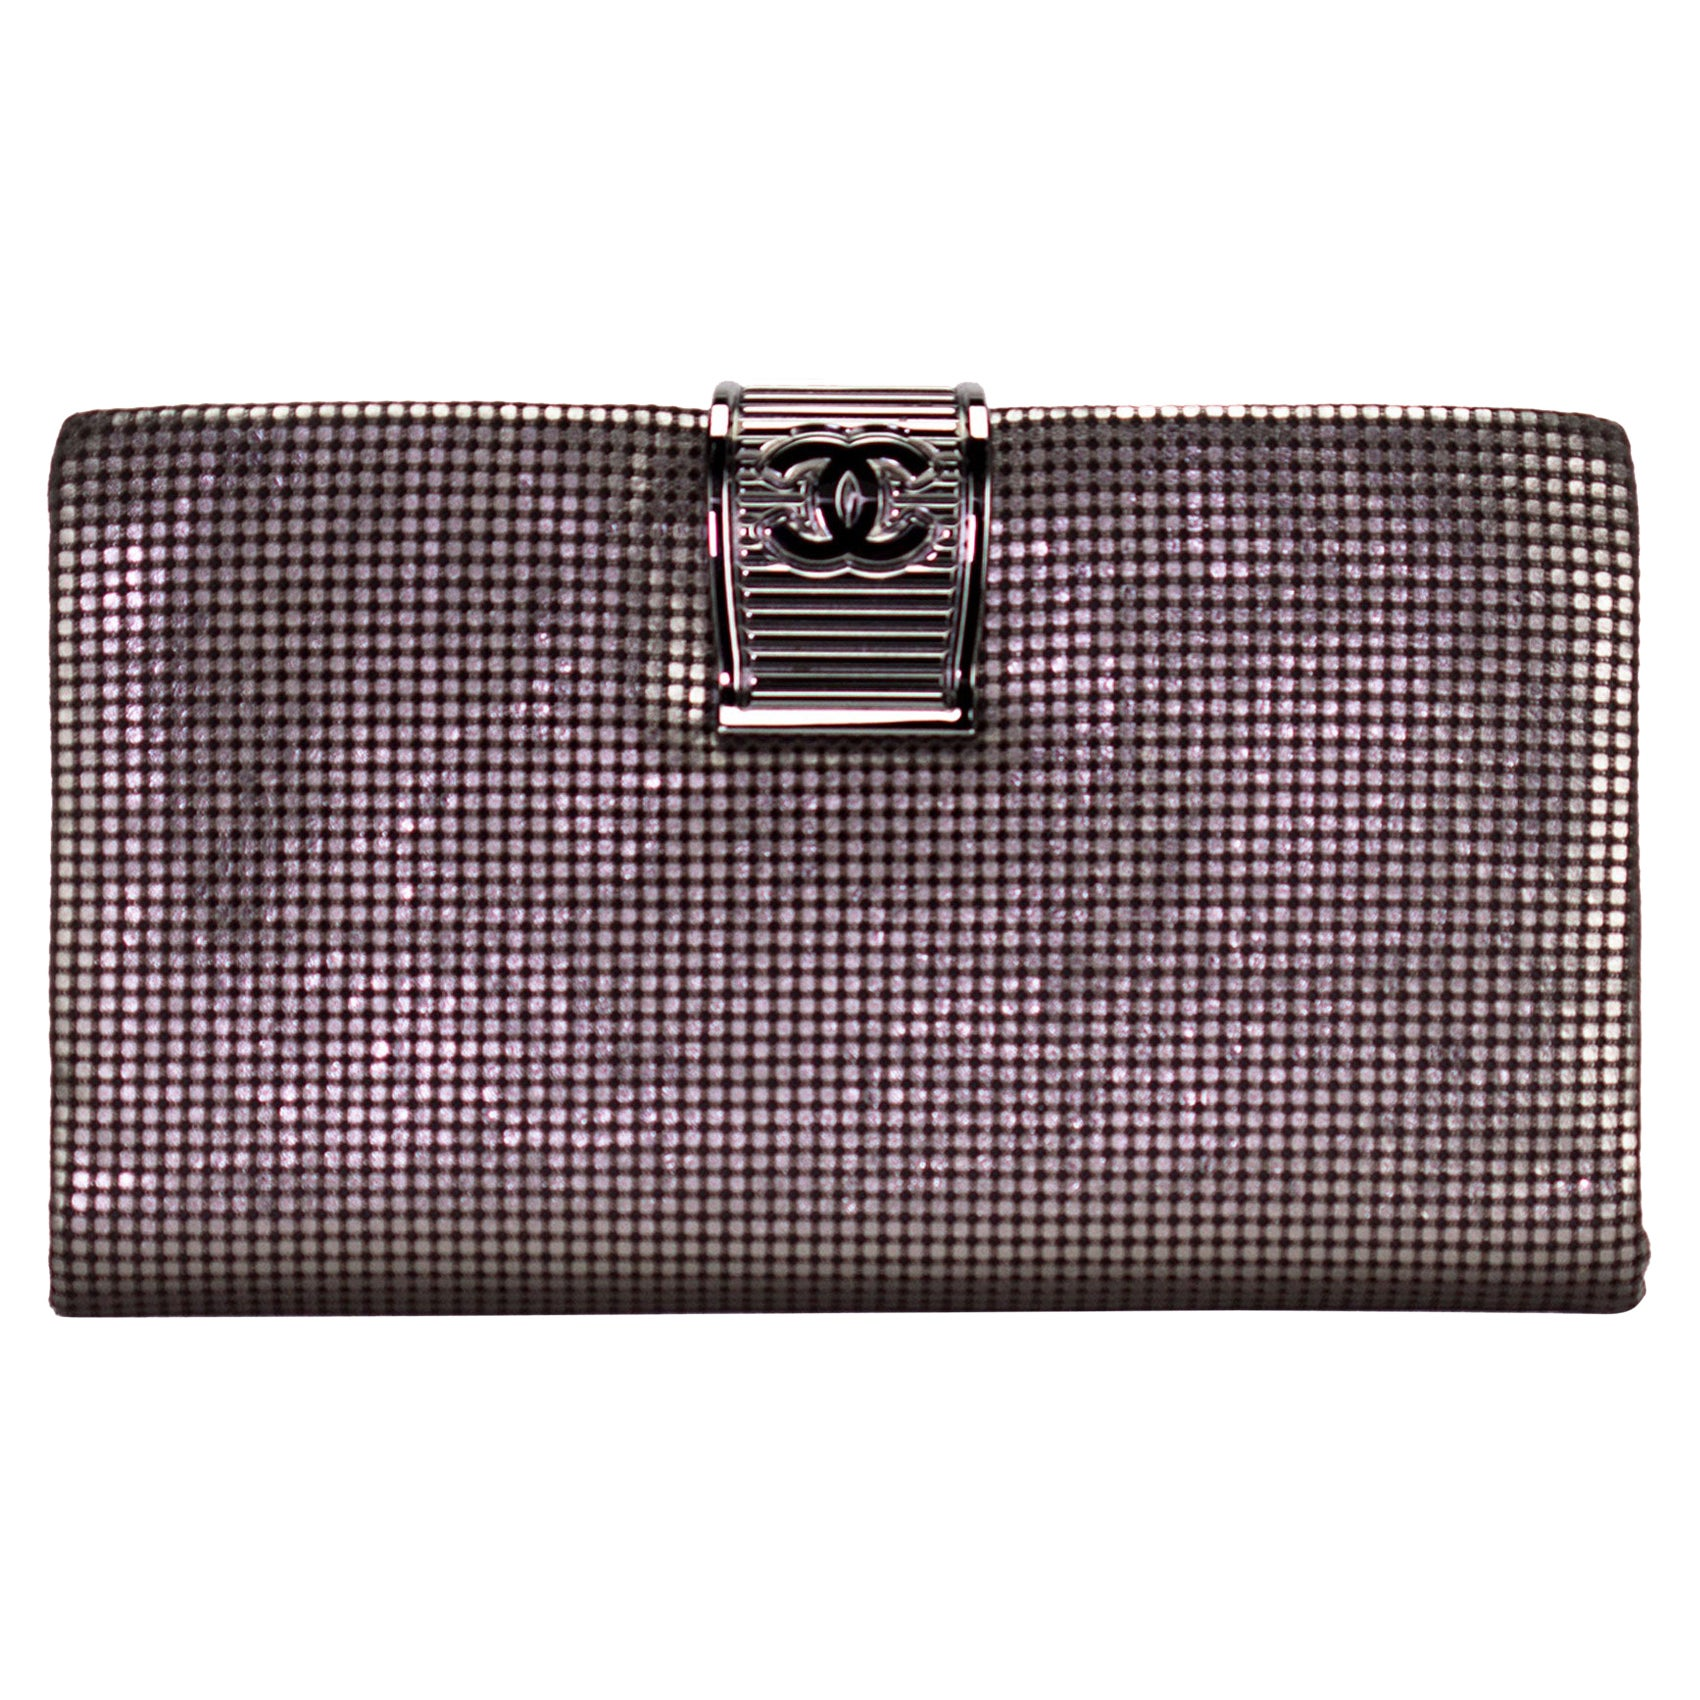 Chanel Laser Etched Metallic Clutch